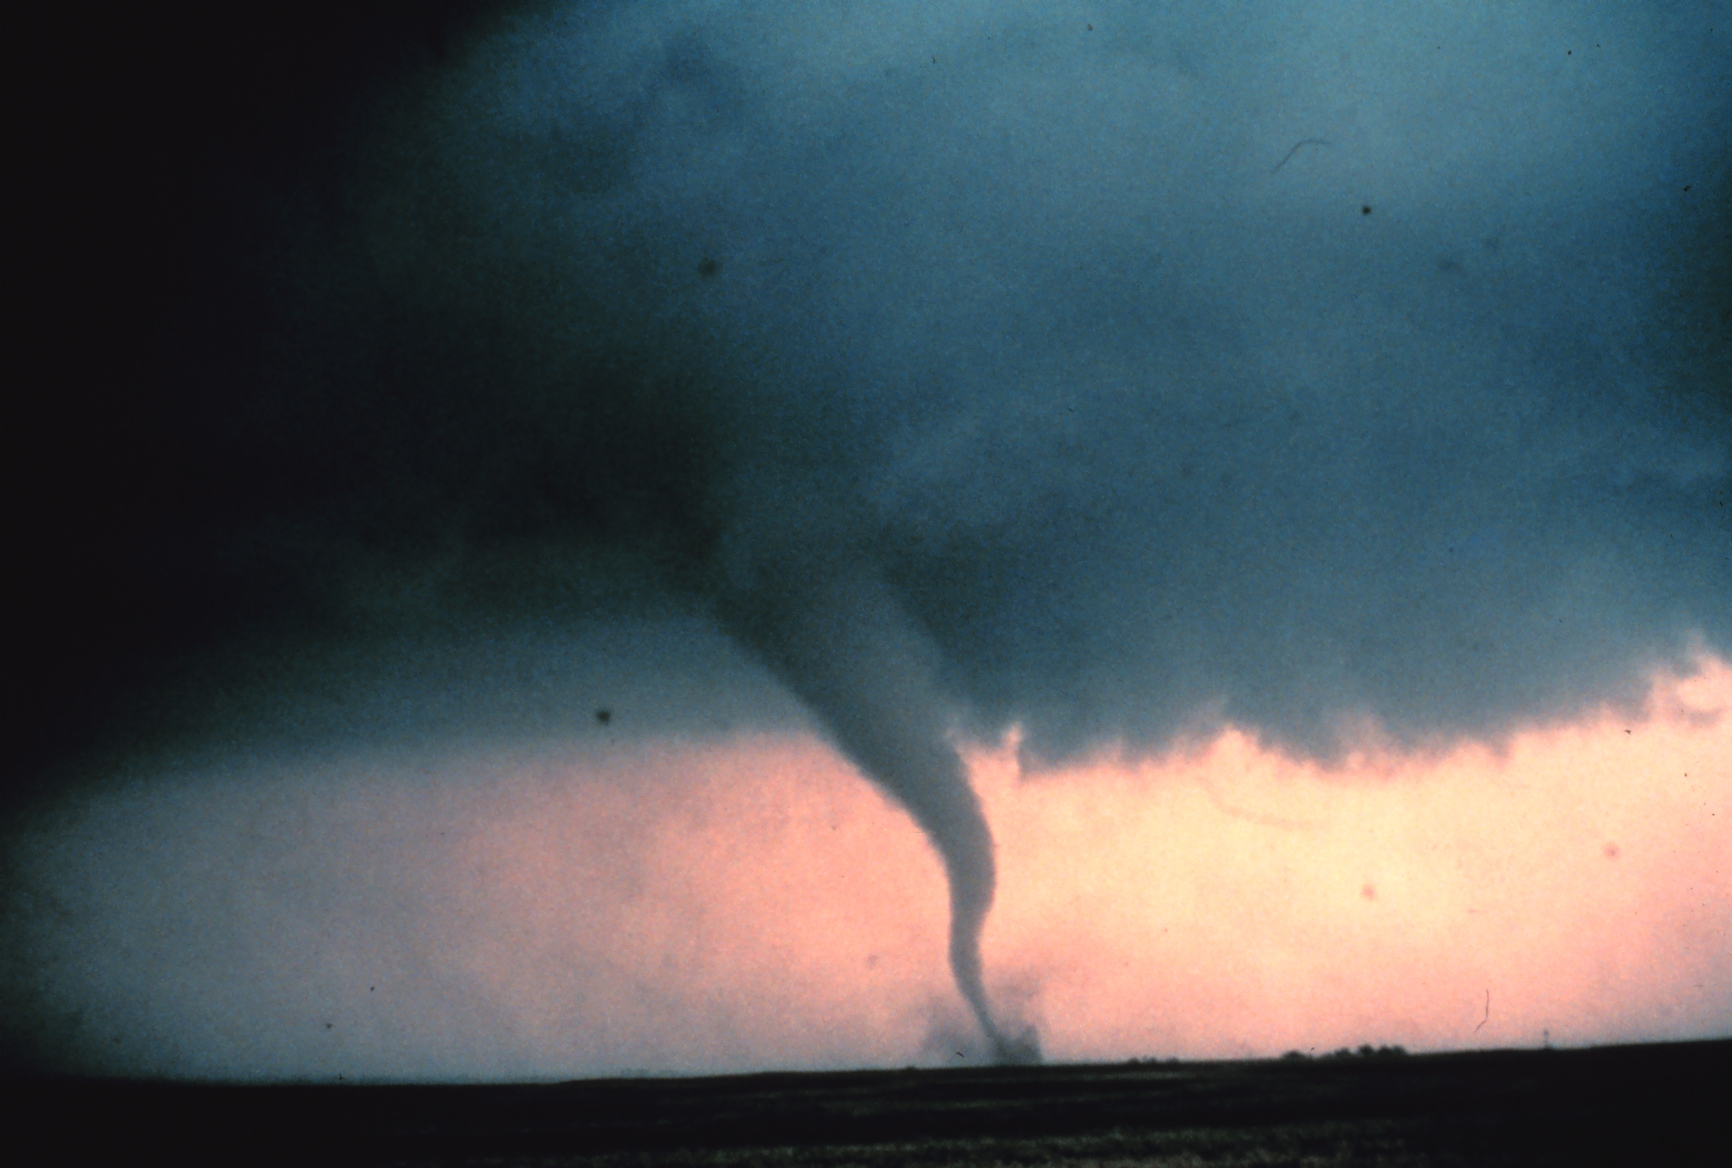 http://upload.wikimedia.org/wikipedia/commons/f/f2/Tornado0_-_NOAA.jpg